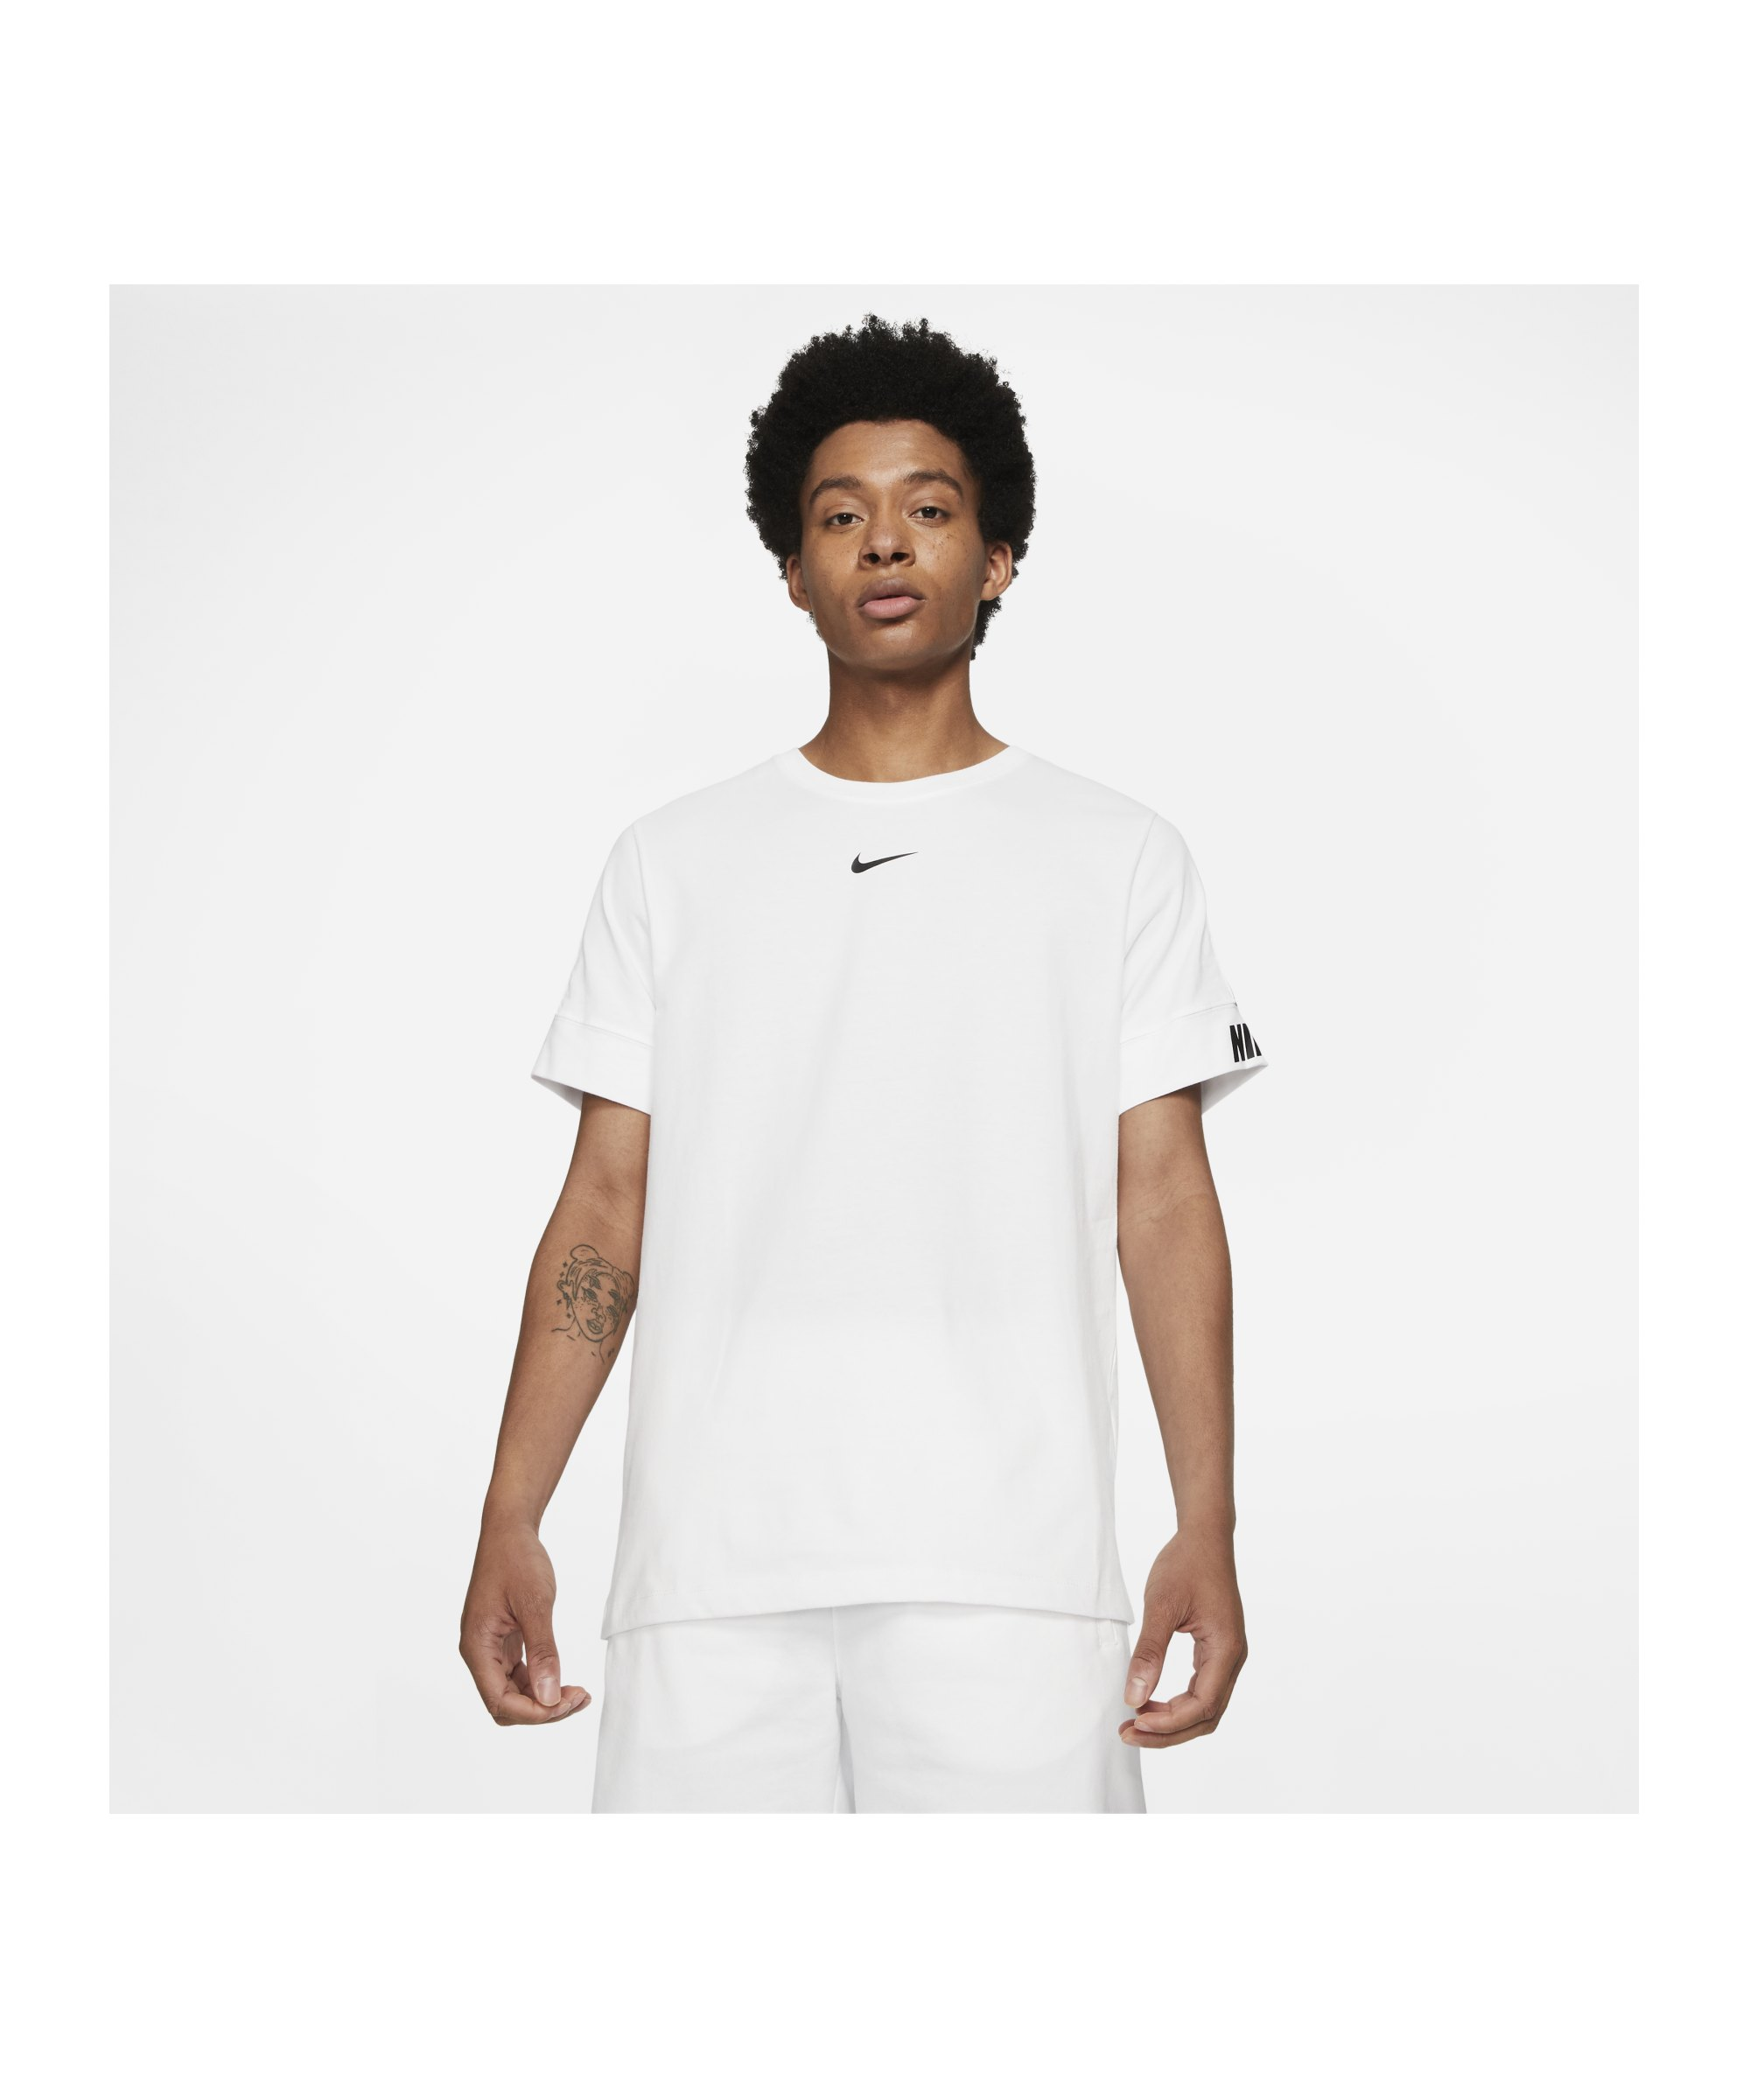 Nike Repeat T-Shirt Weiss F100 - weiss